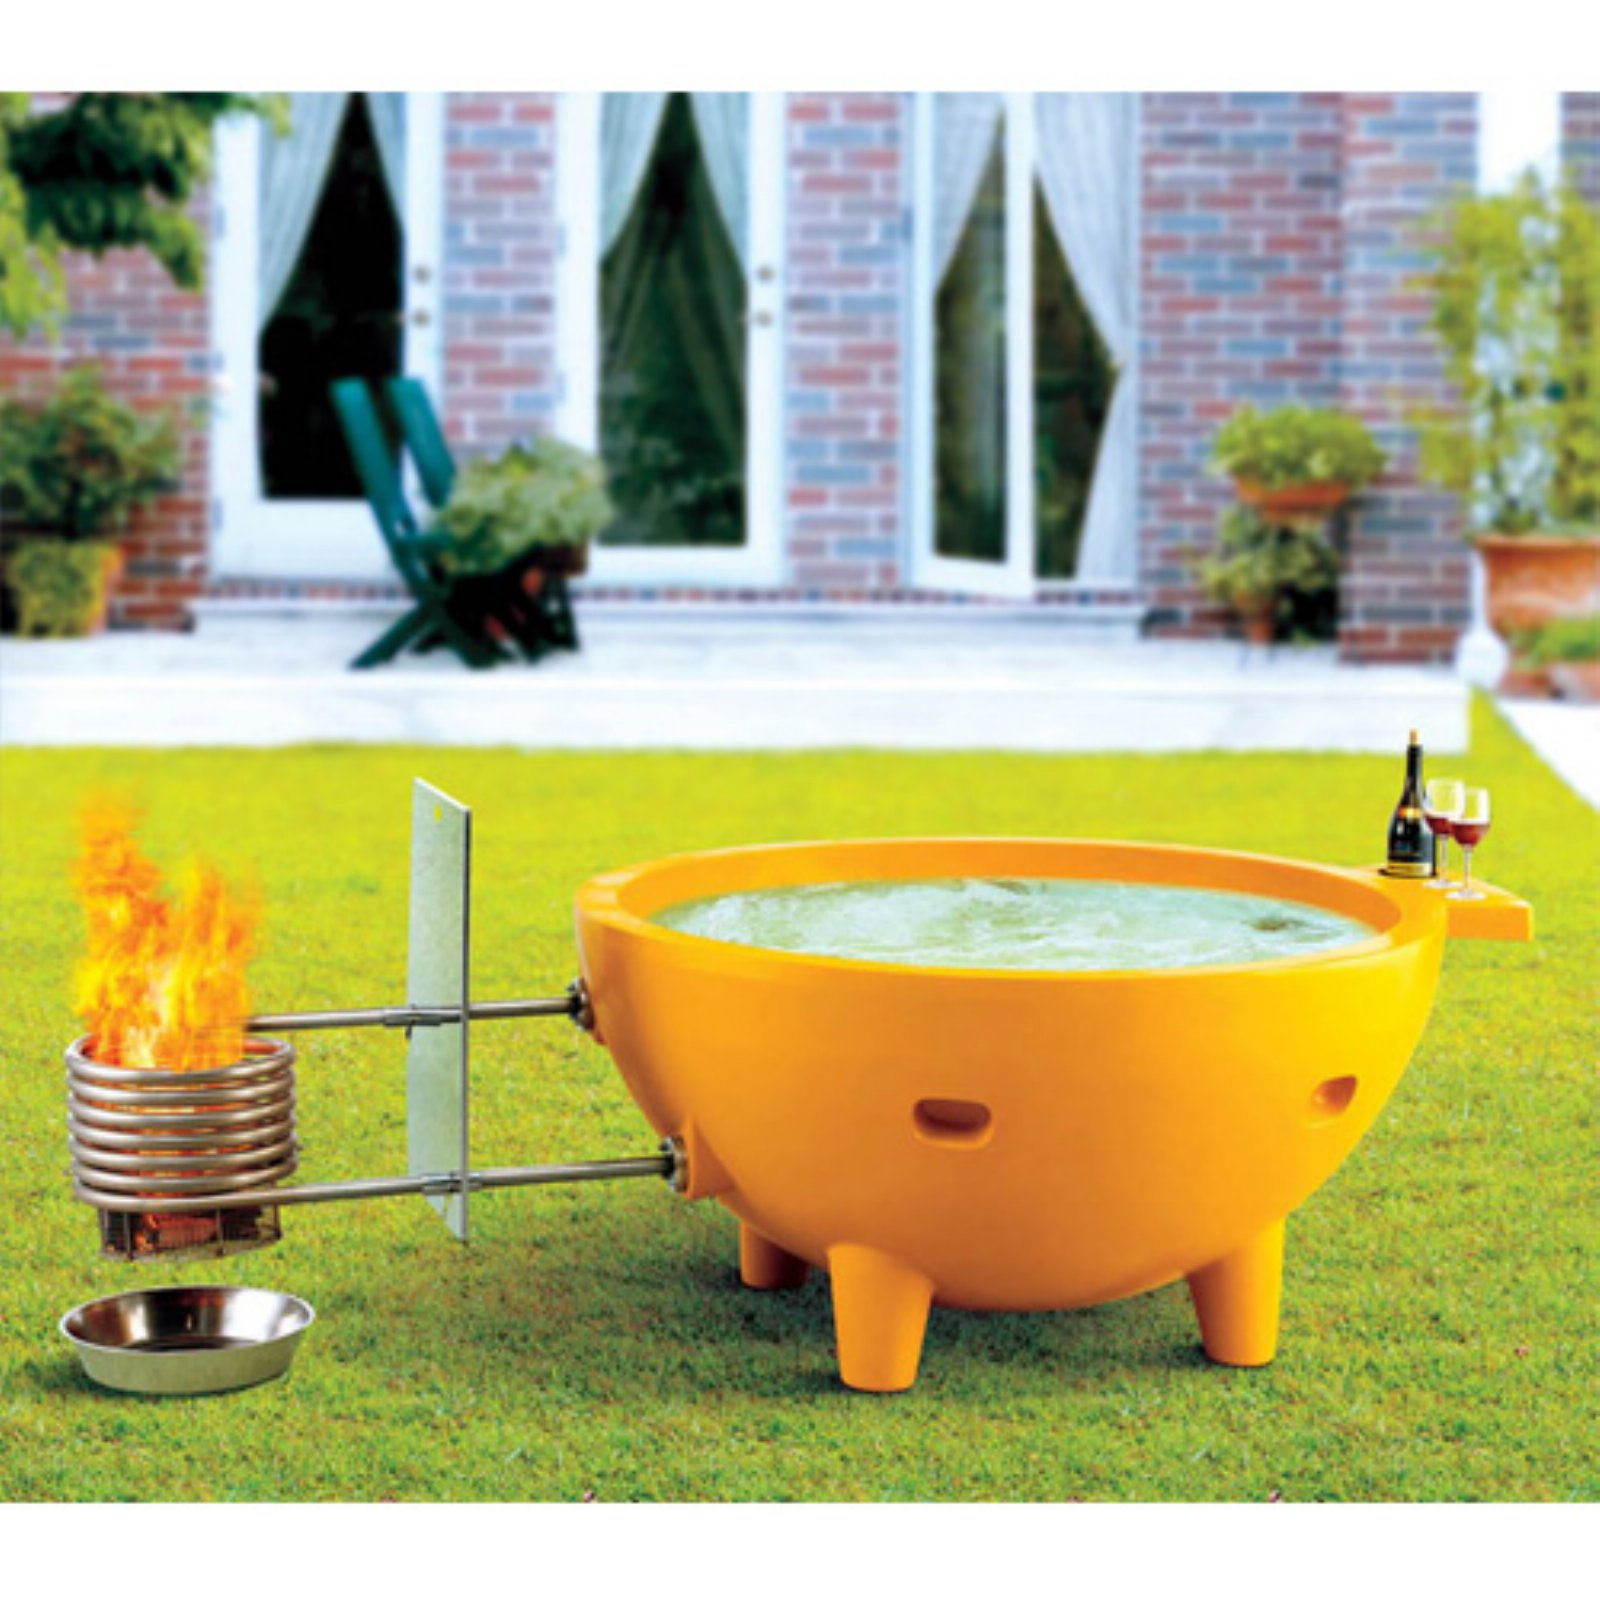 ALFI brand Green FireHotTub The Round Fire Burning Portable Outdoor Hot Bathtub by Hot Tubs